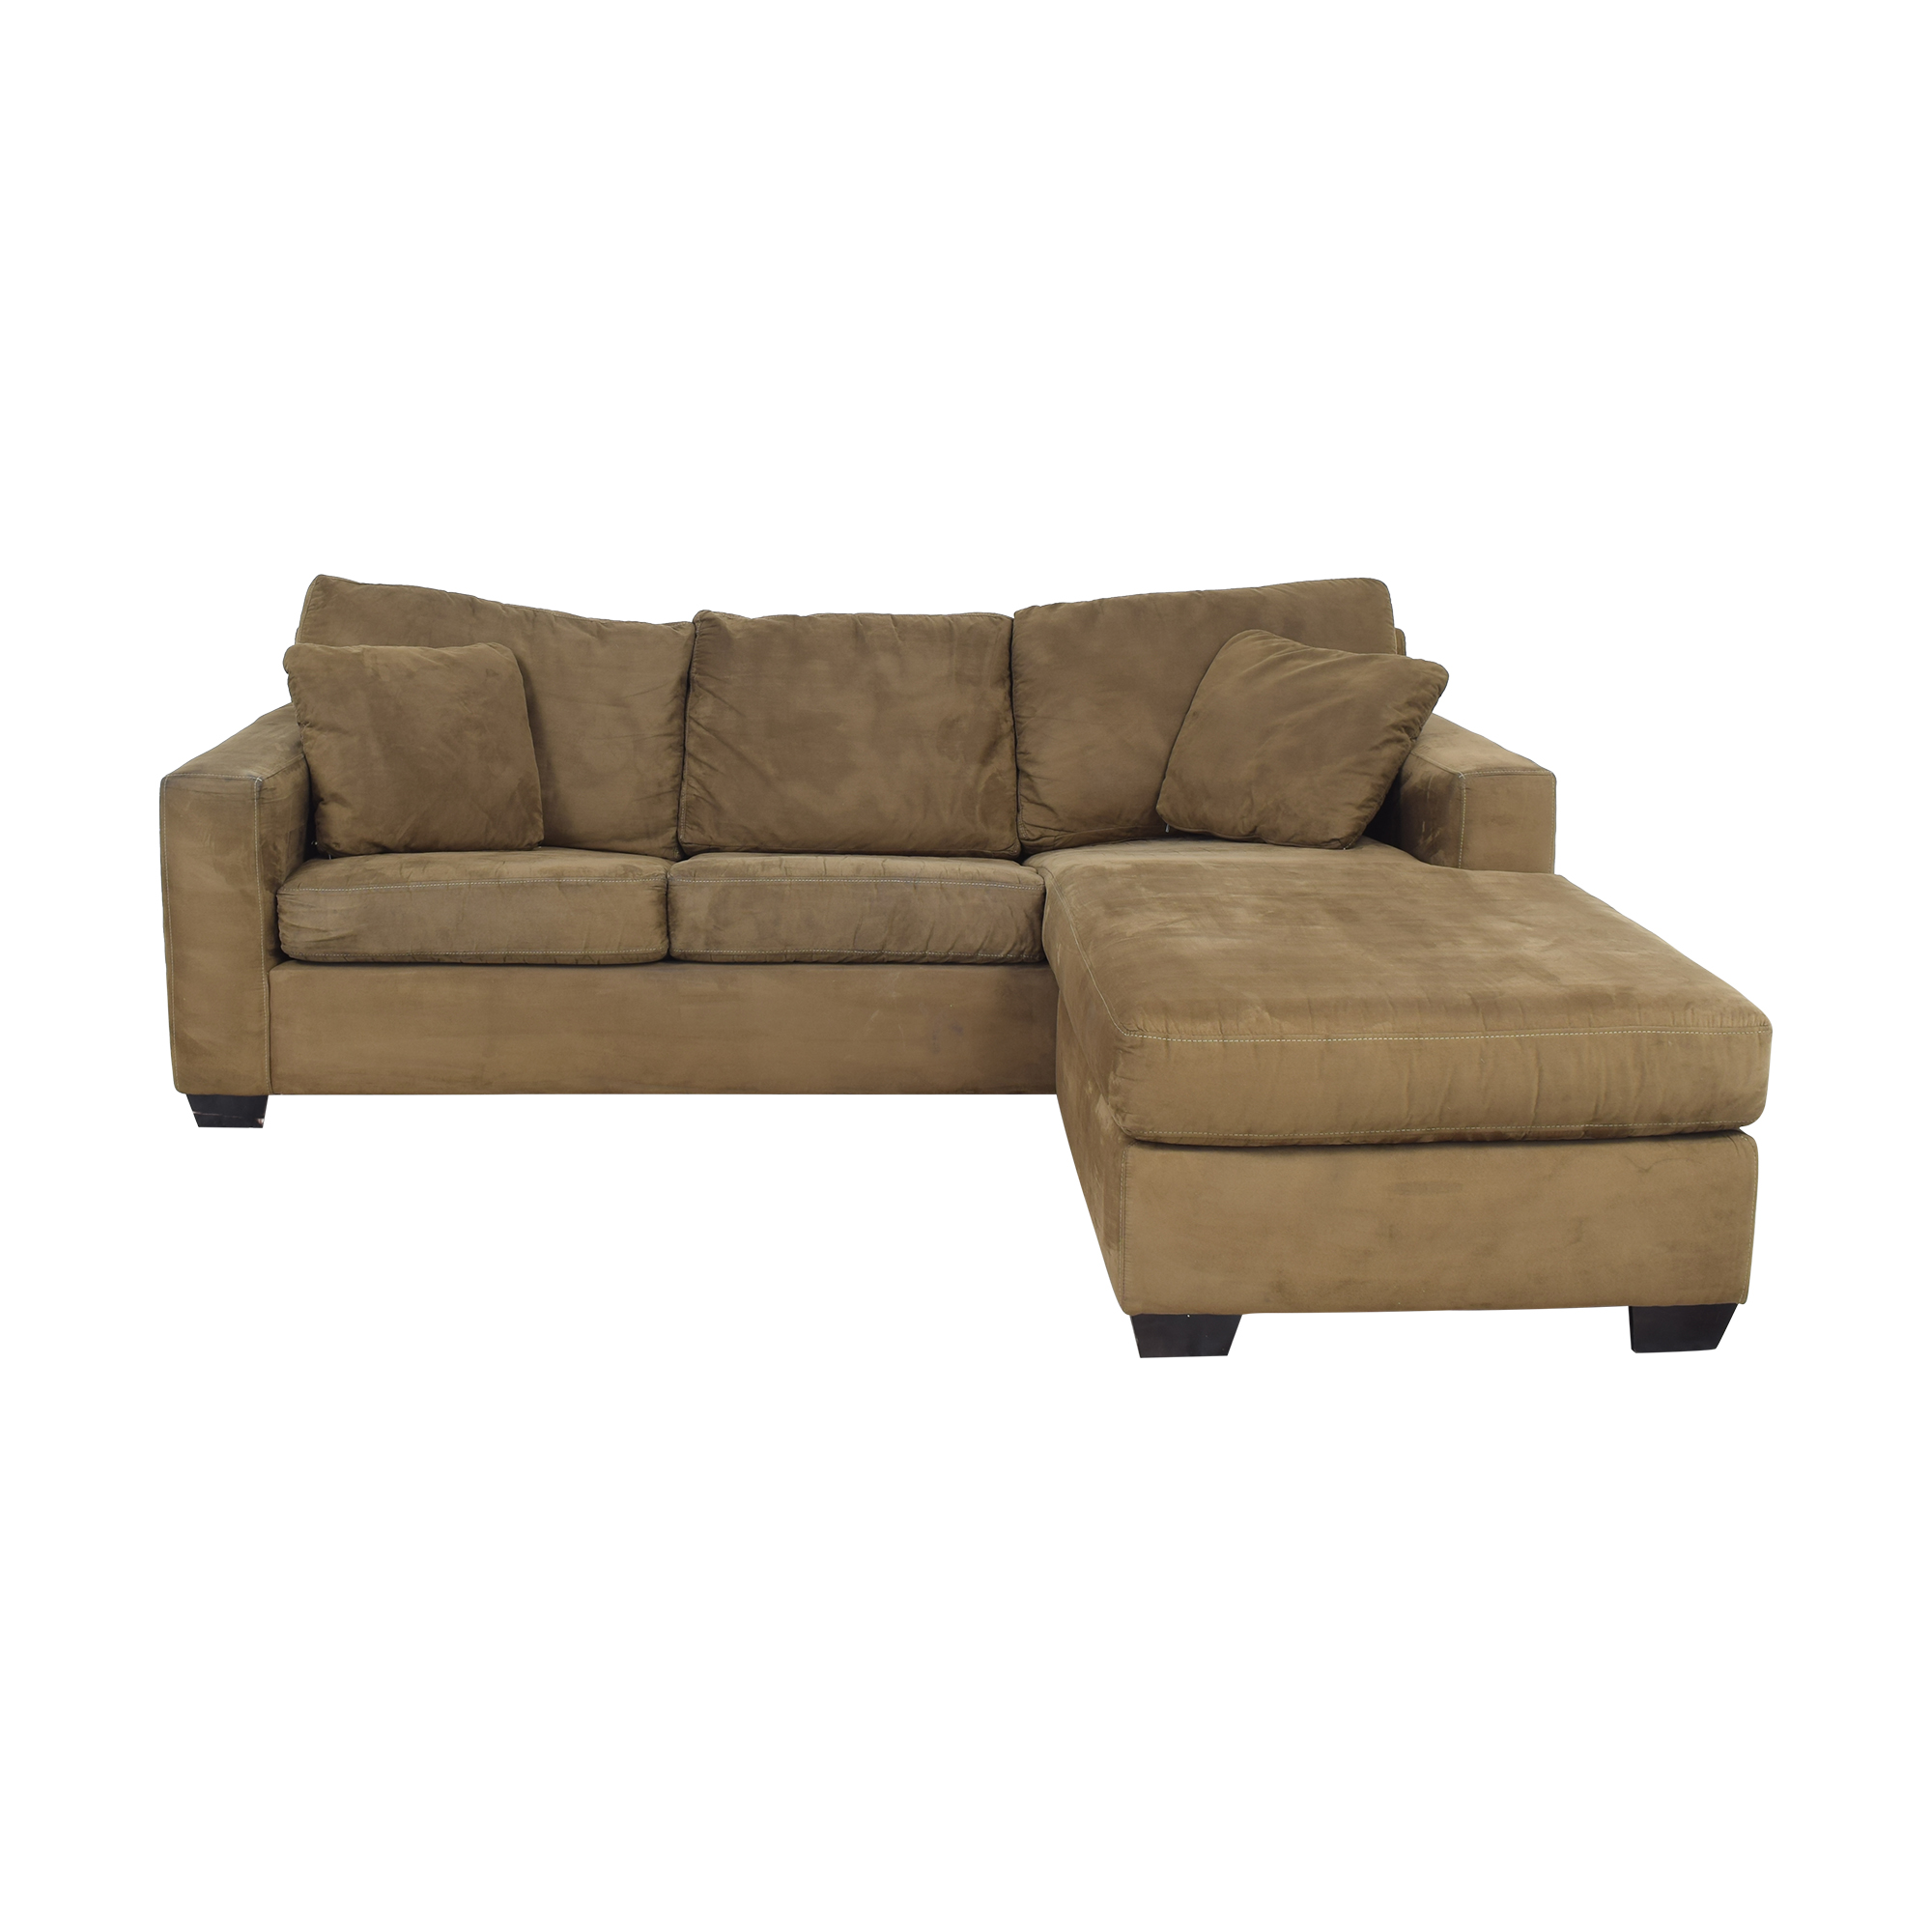 Macy's Macy's L-Shaped Sleeper Sectional Sofa Sectionals